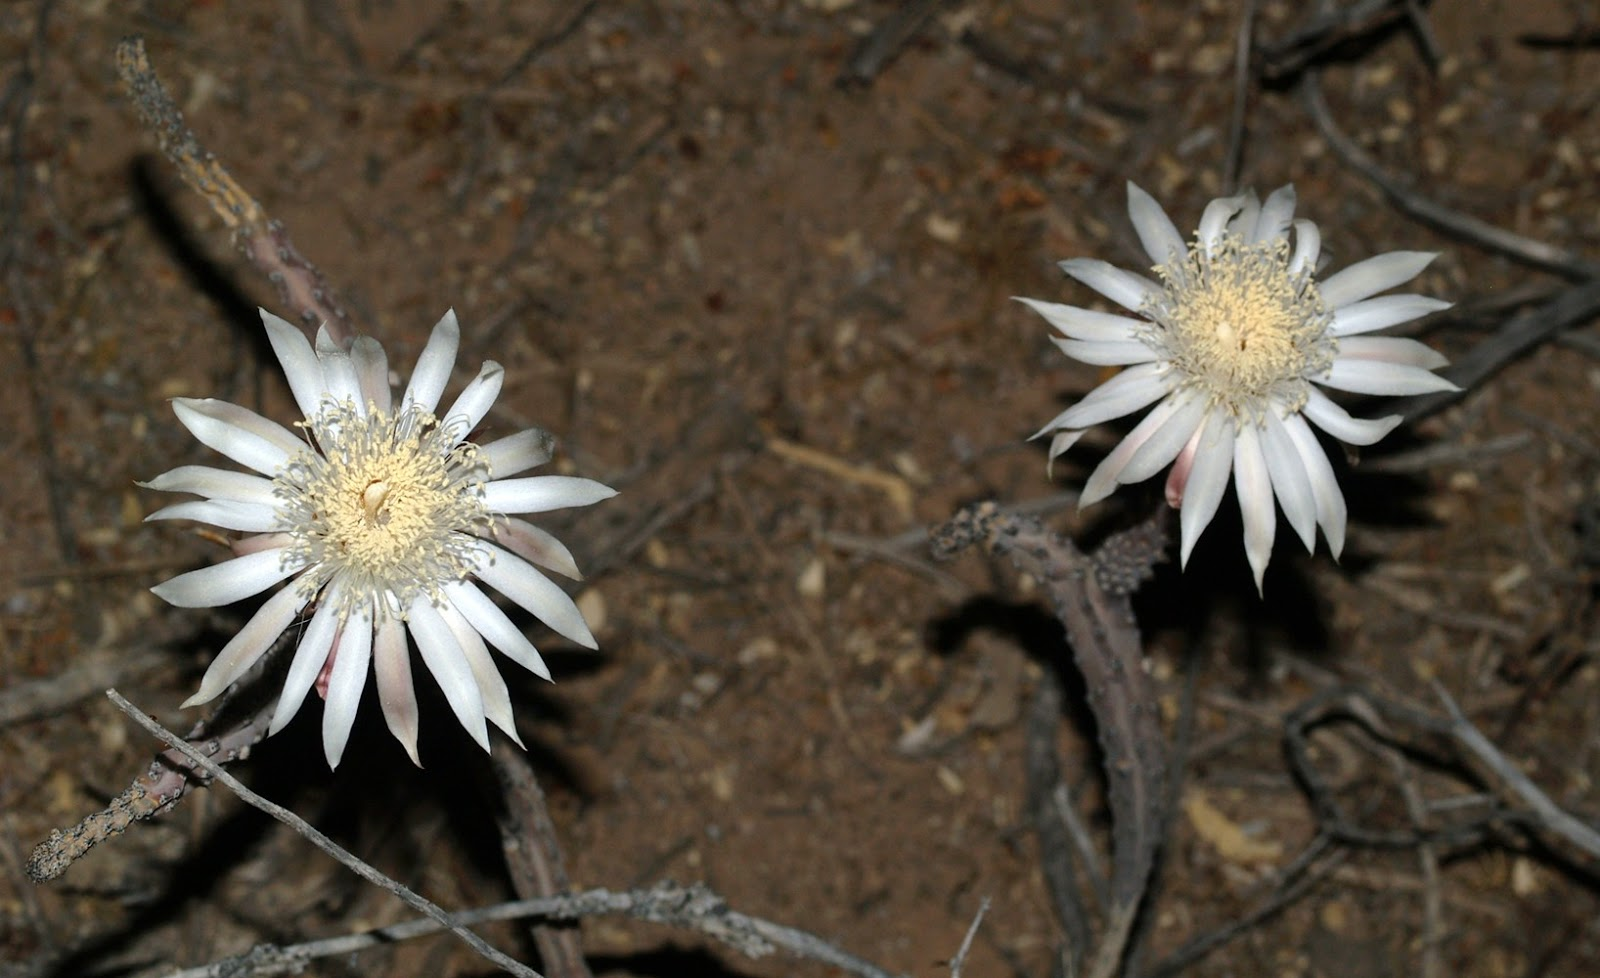 Arizona Beetles Bugs Birds And More Queen Of The Night Bloom